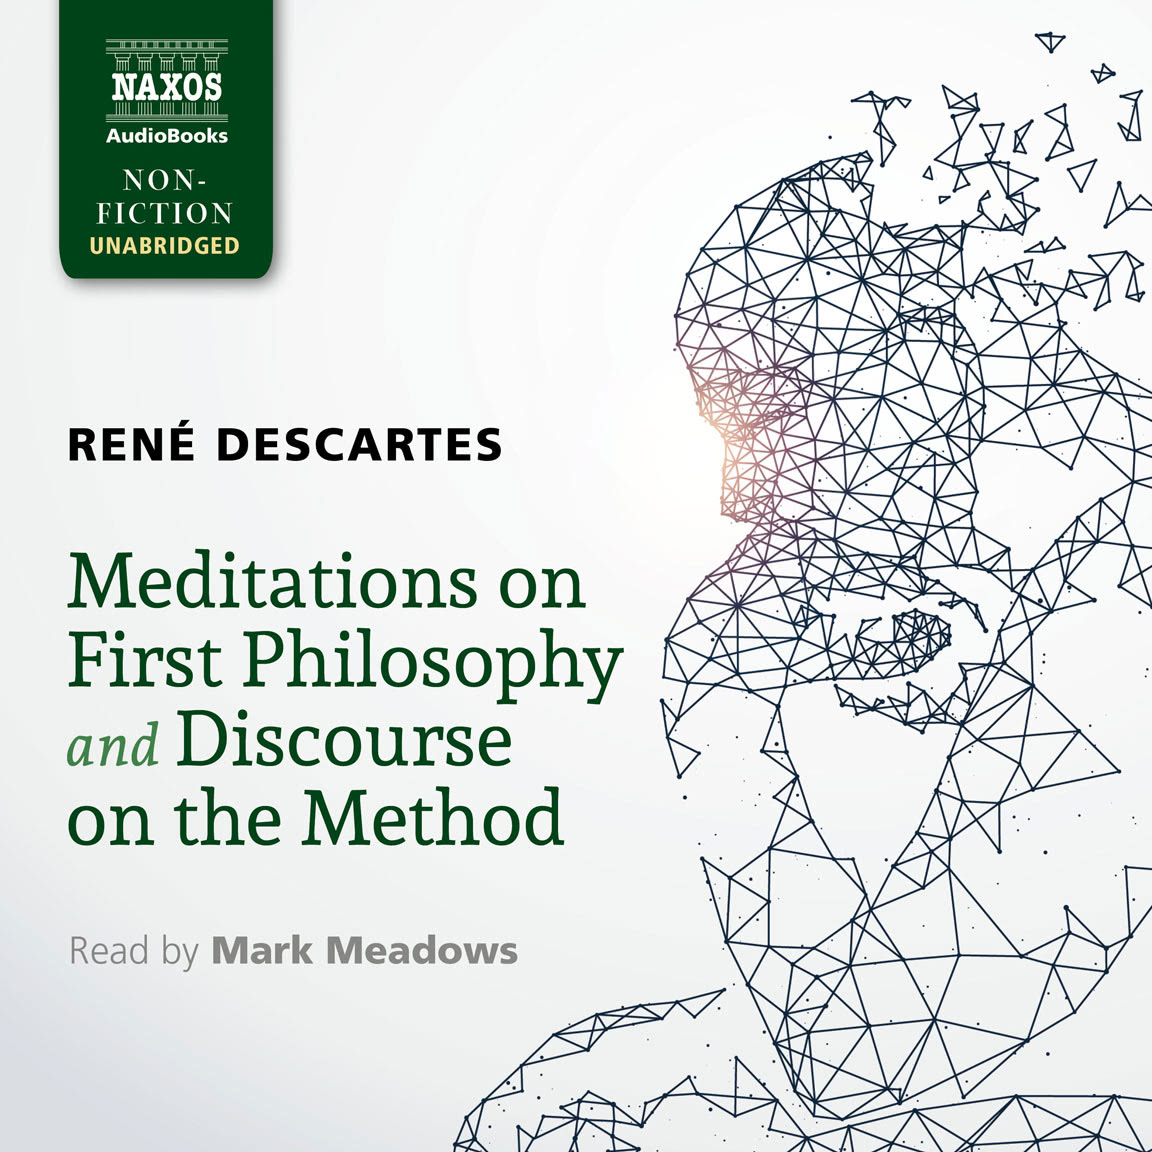 Meditations on First Philosophy and Discourse on the Method (unabridged)